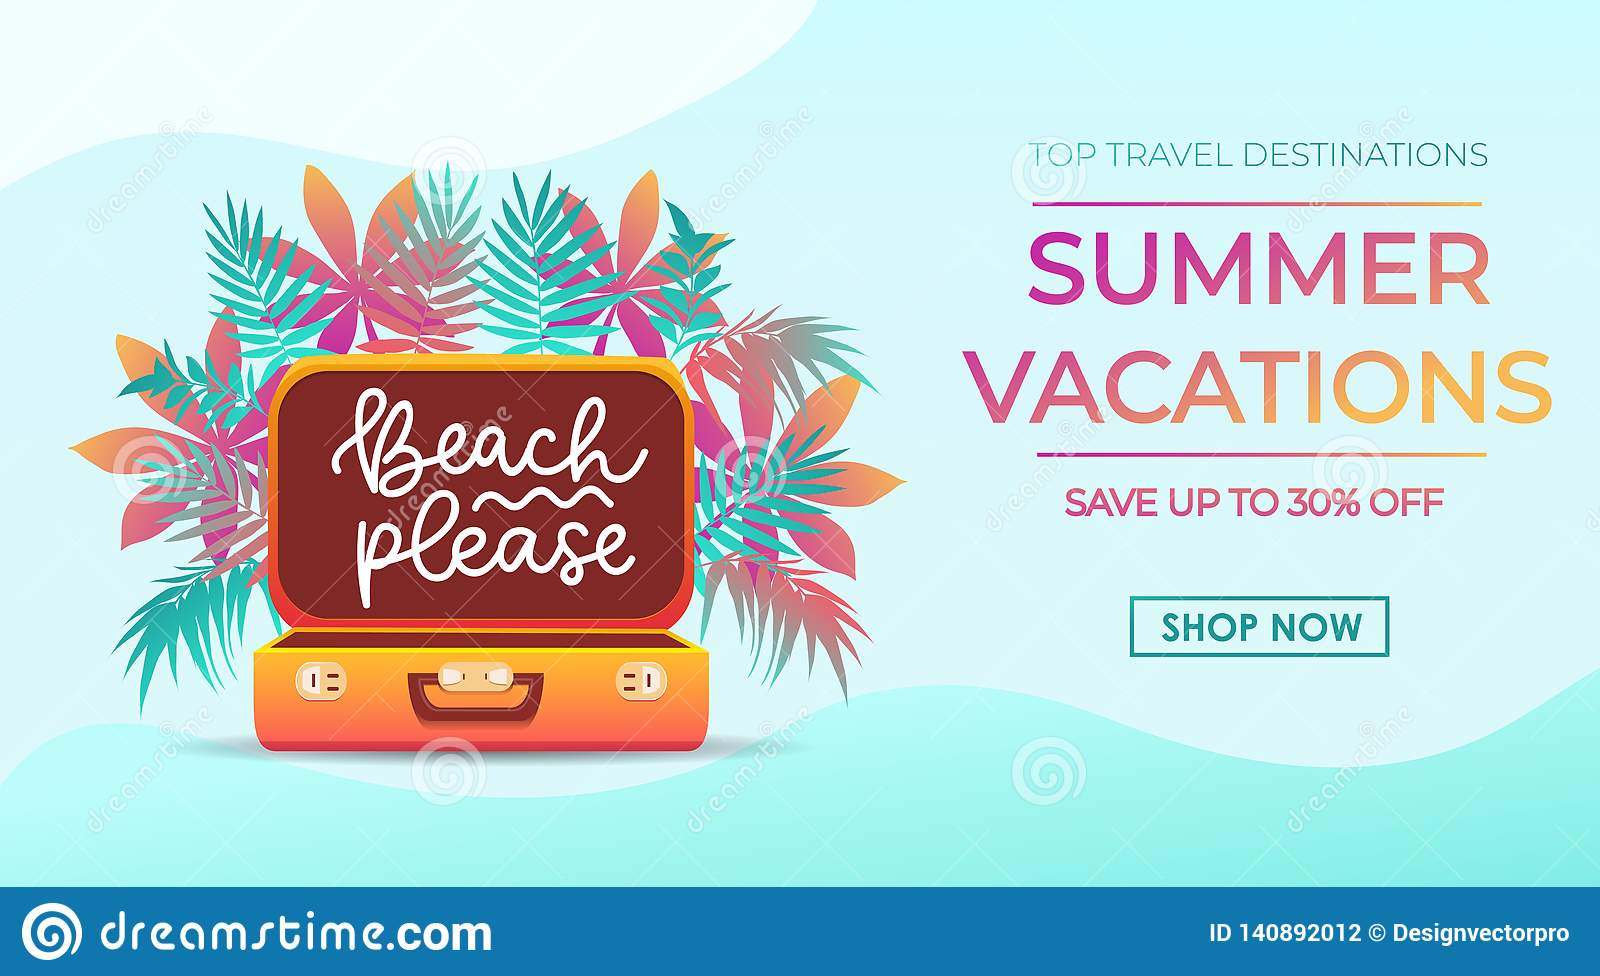 Summer Vacations Banner Design In Trendy Style For Travel Agency